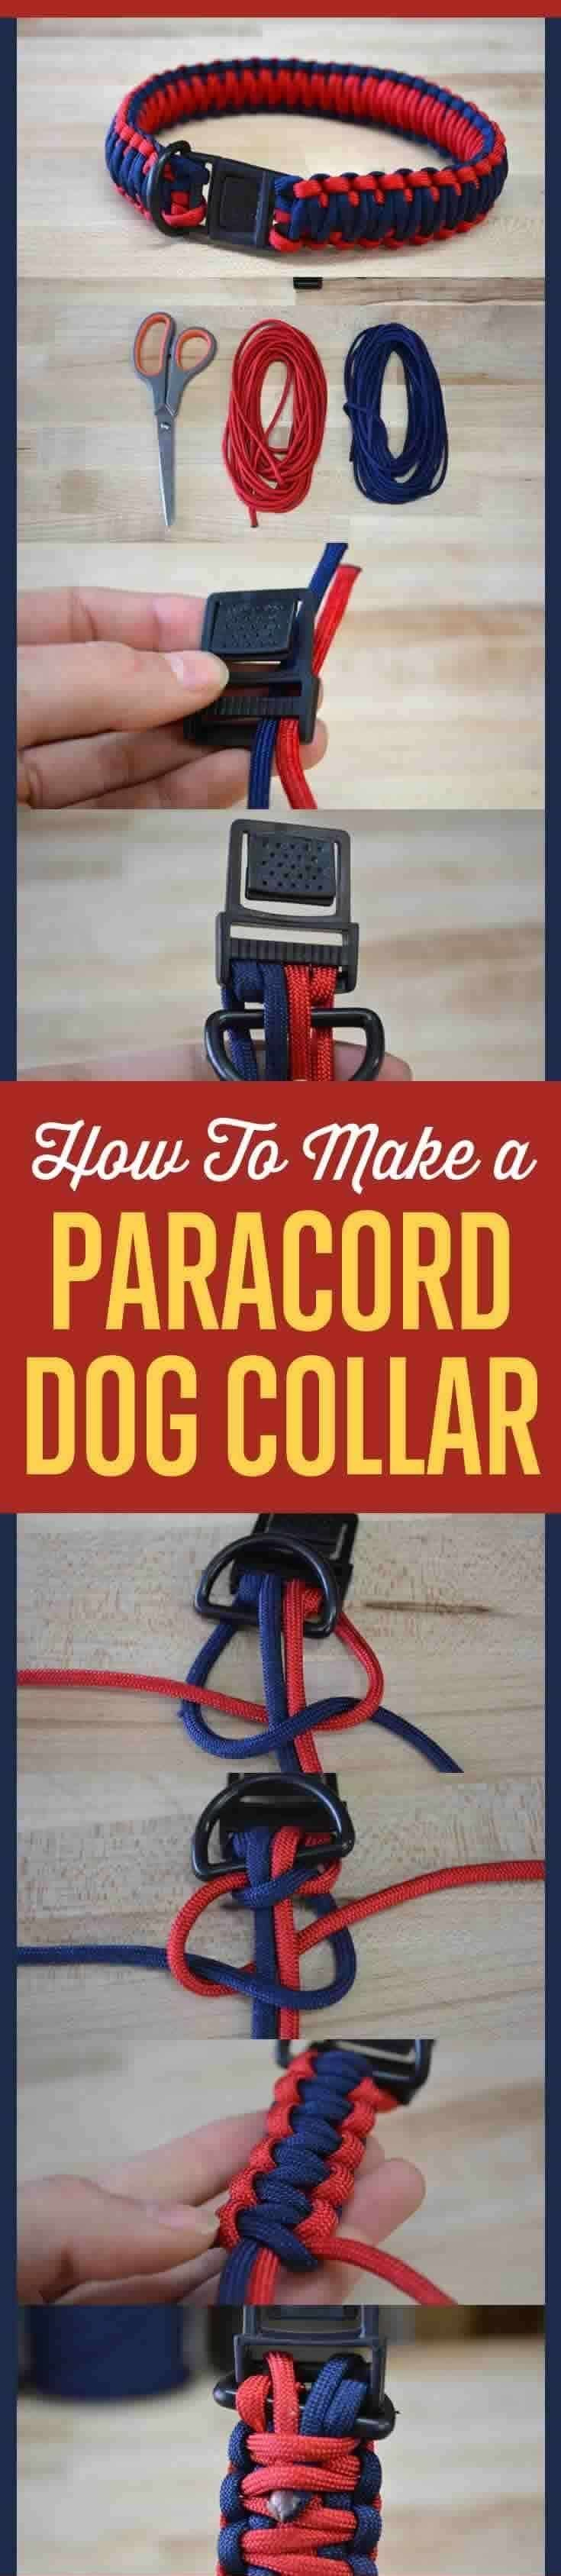 Paracord dog collar infographic